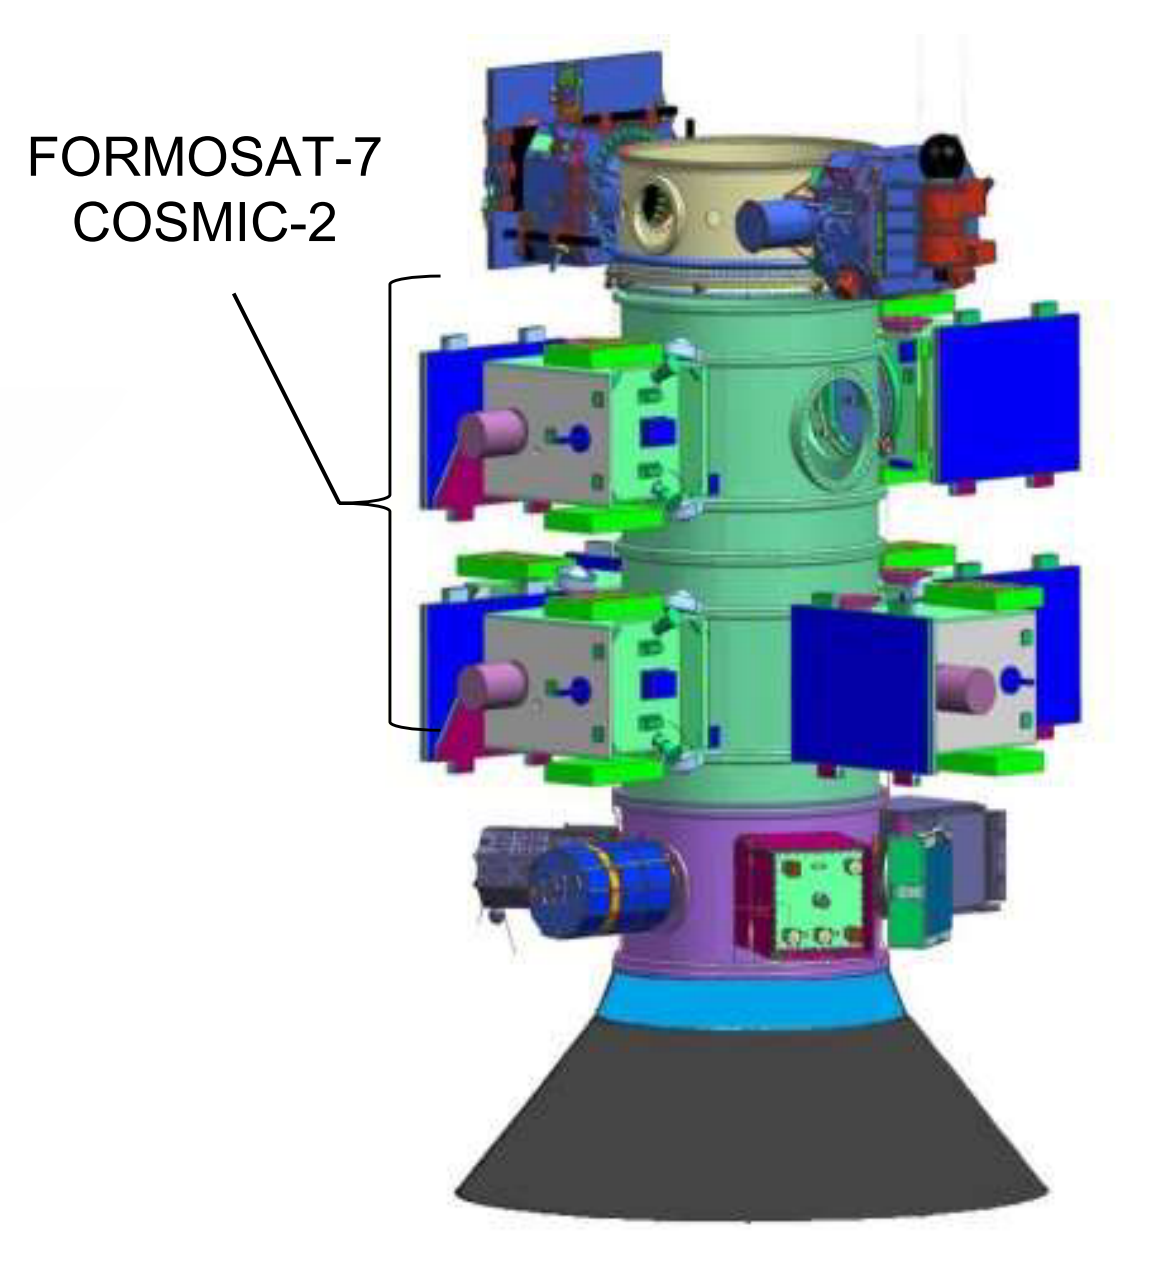 COSMIC-2 Formosat-7 stack